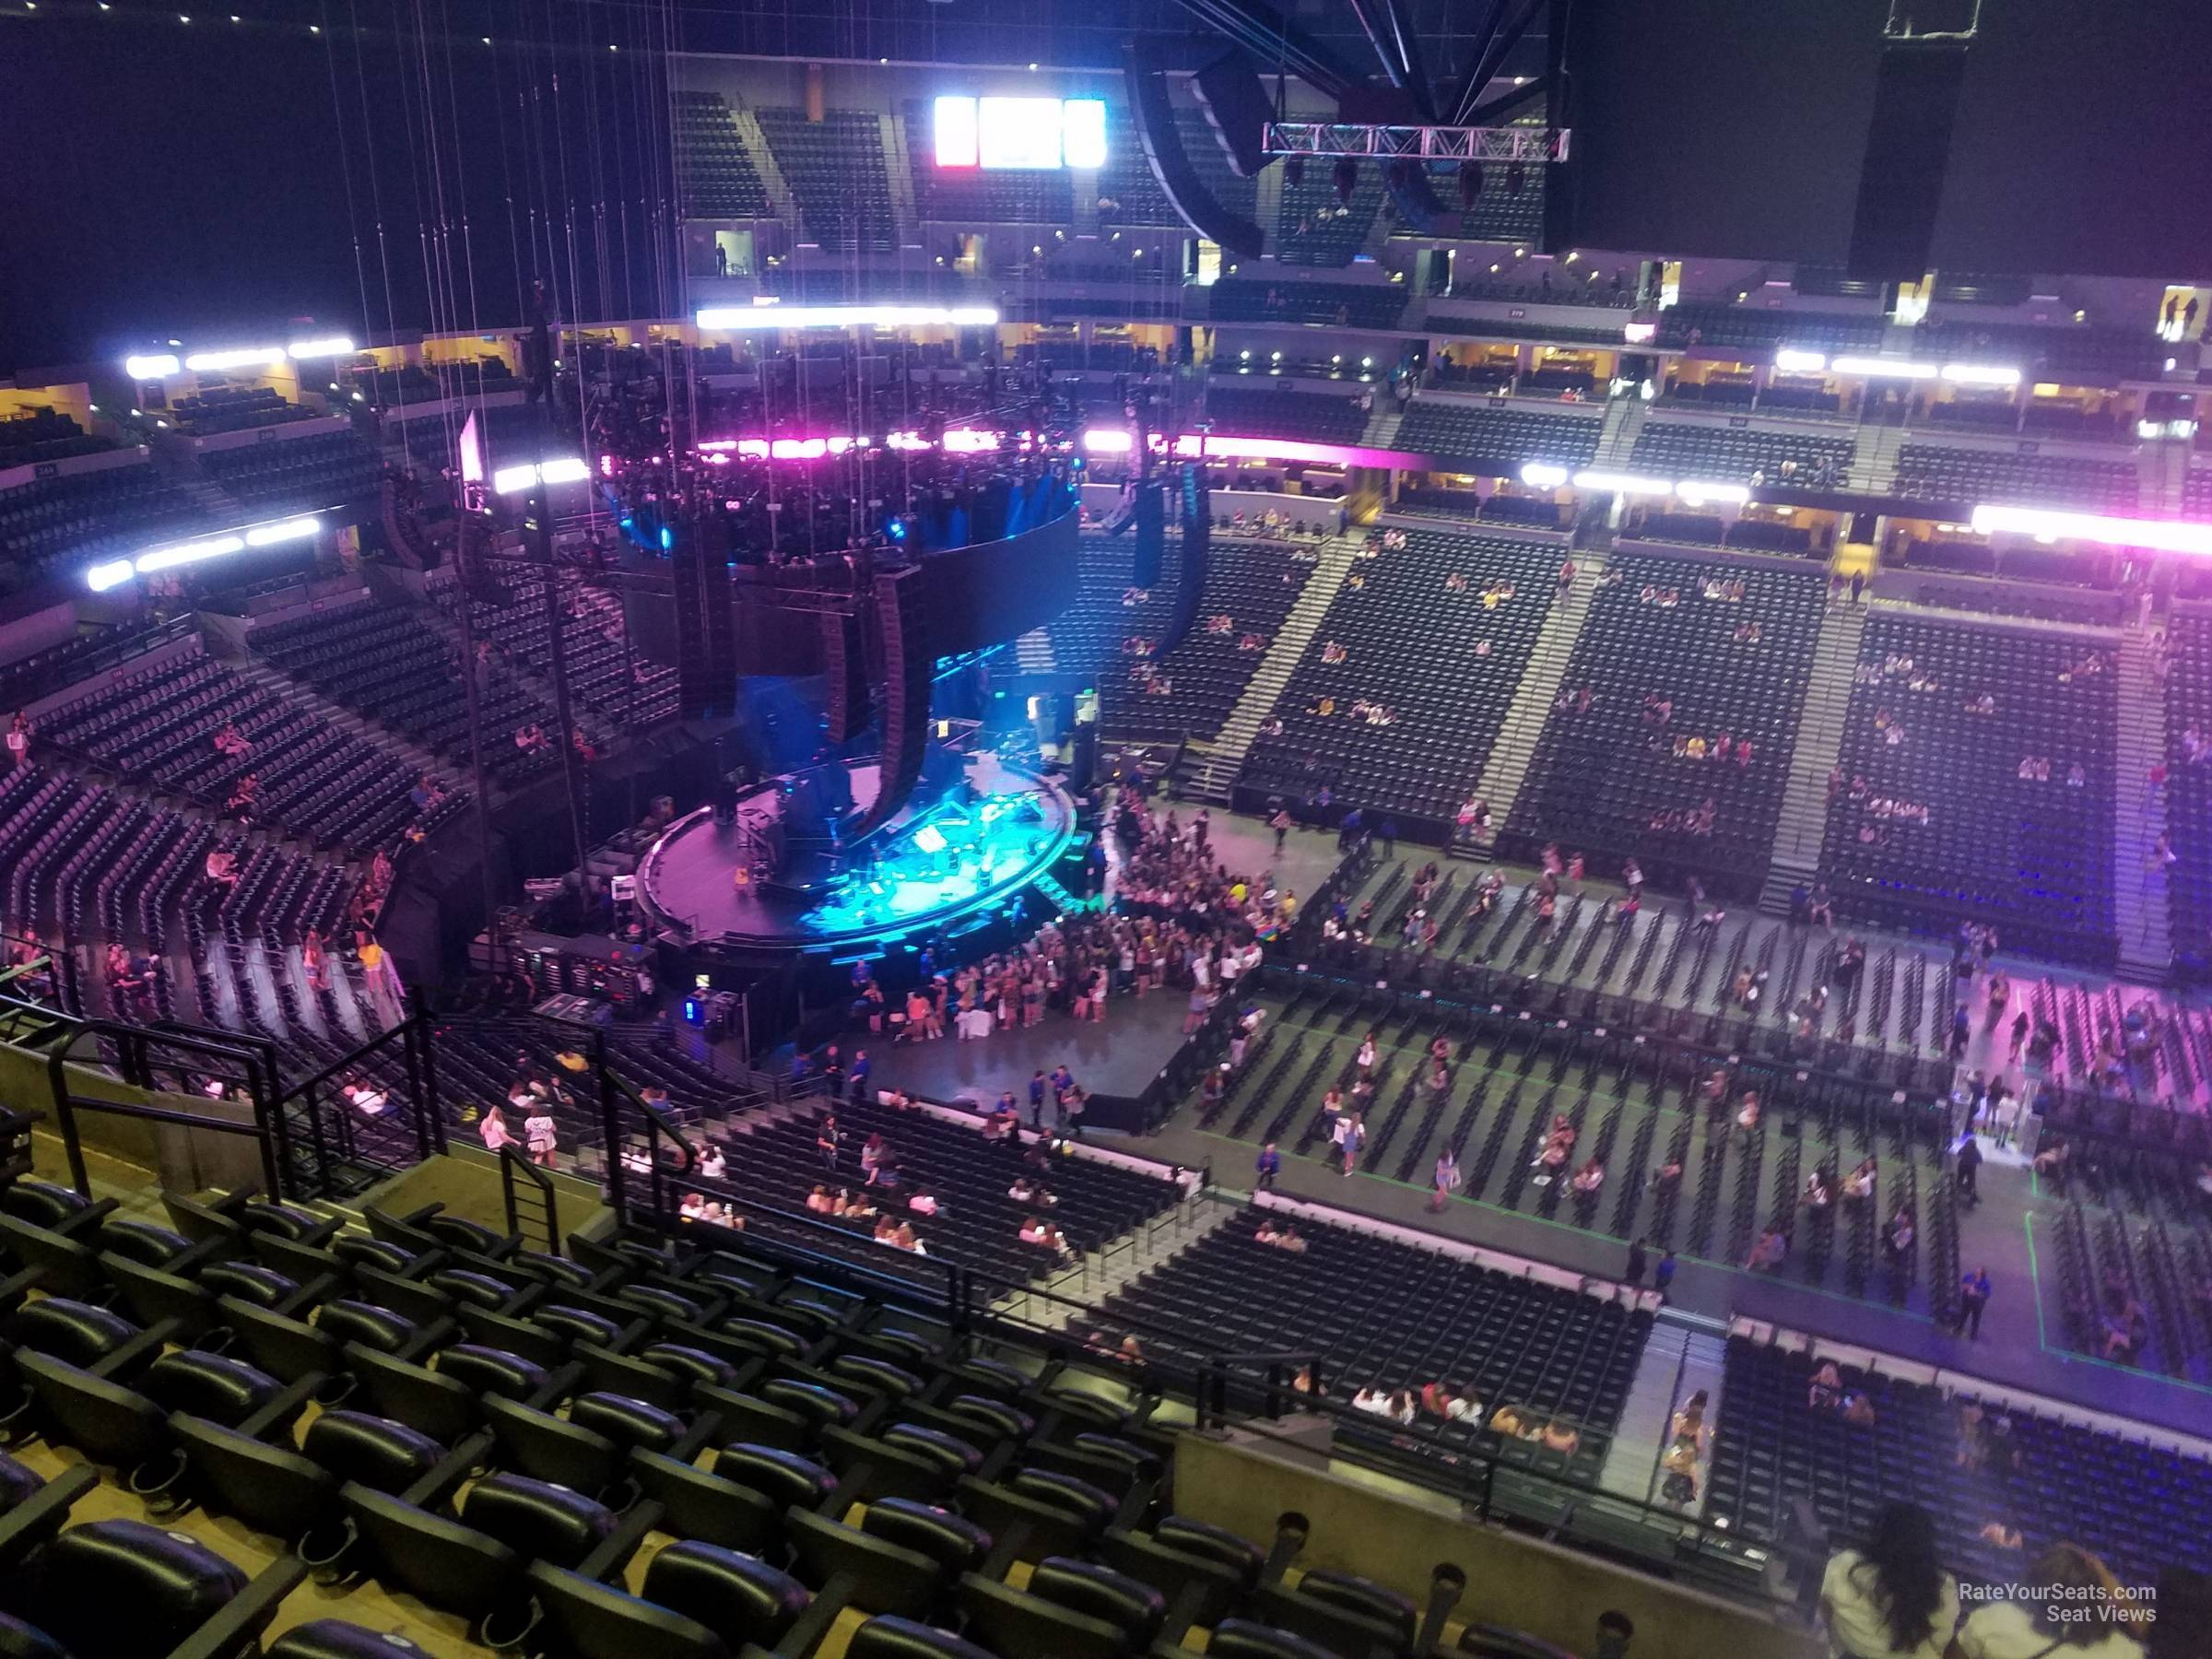 Pepsi Center: Pepsi Center Section 344 Concert Seating